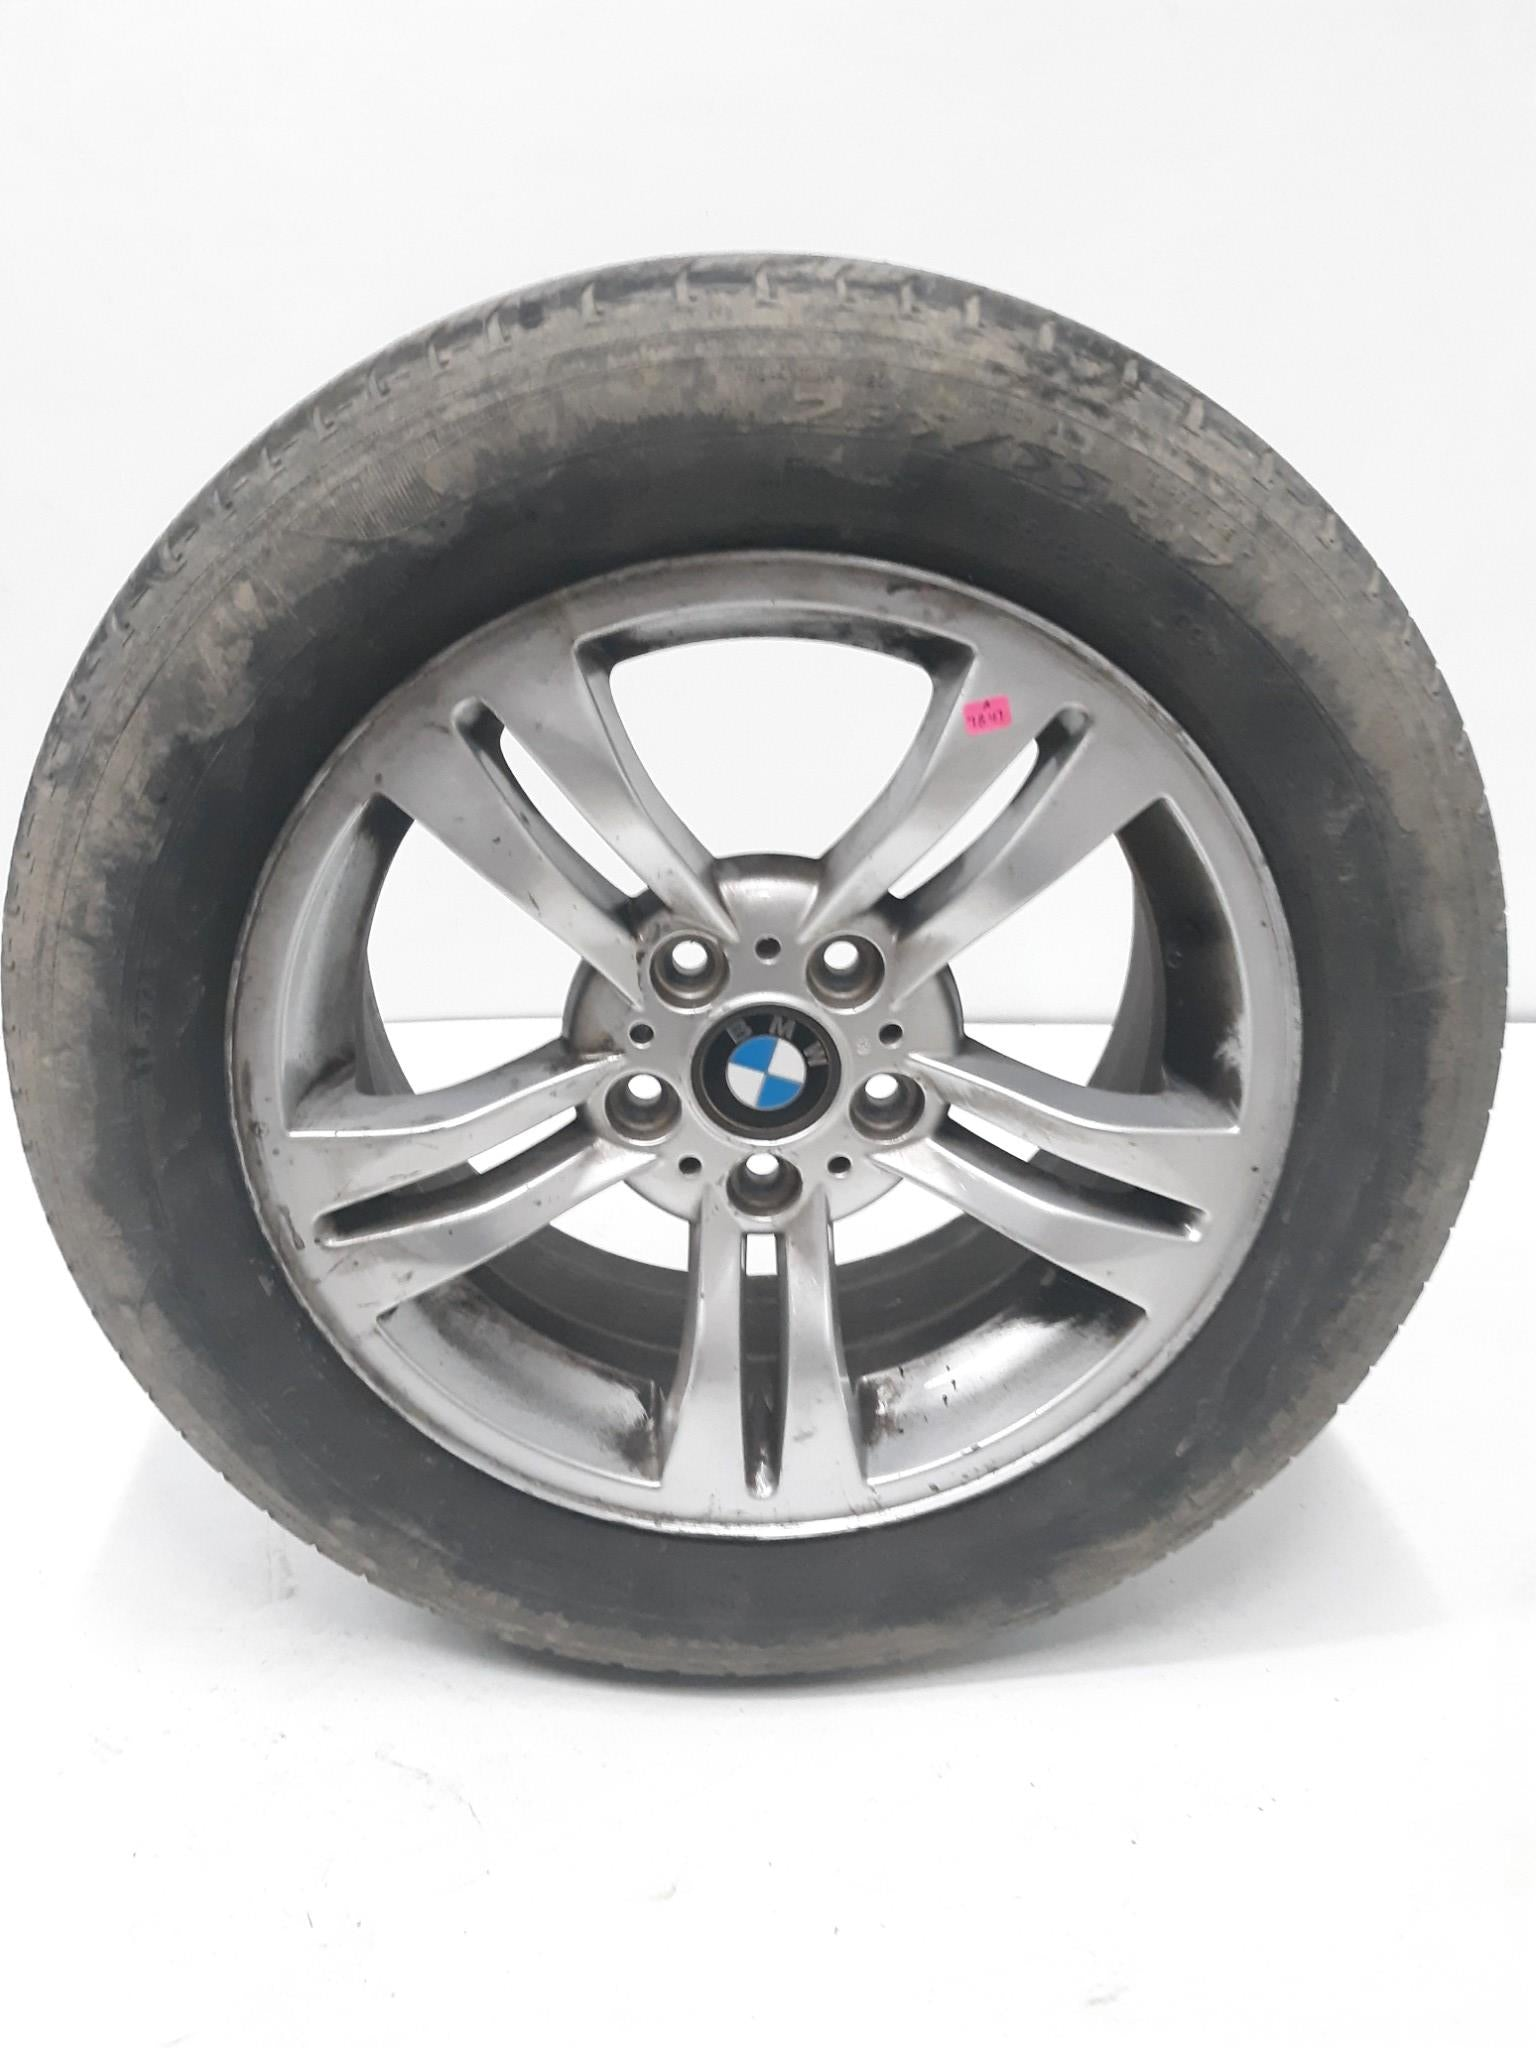 "2004 - 2010 BMW X3 Alloy 17"" 10 Spoke 17x8 RIM WHEEL & TIRE 3401200 OEM 6.1/32nd"